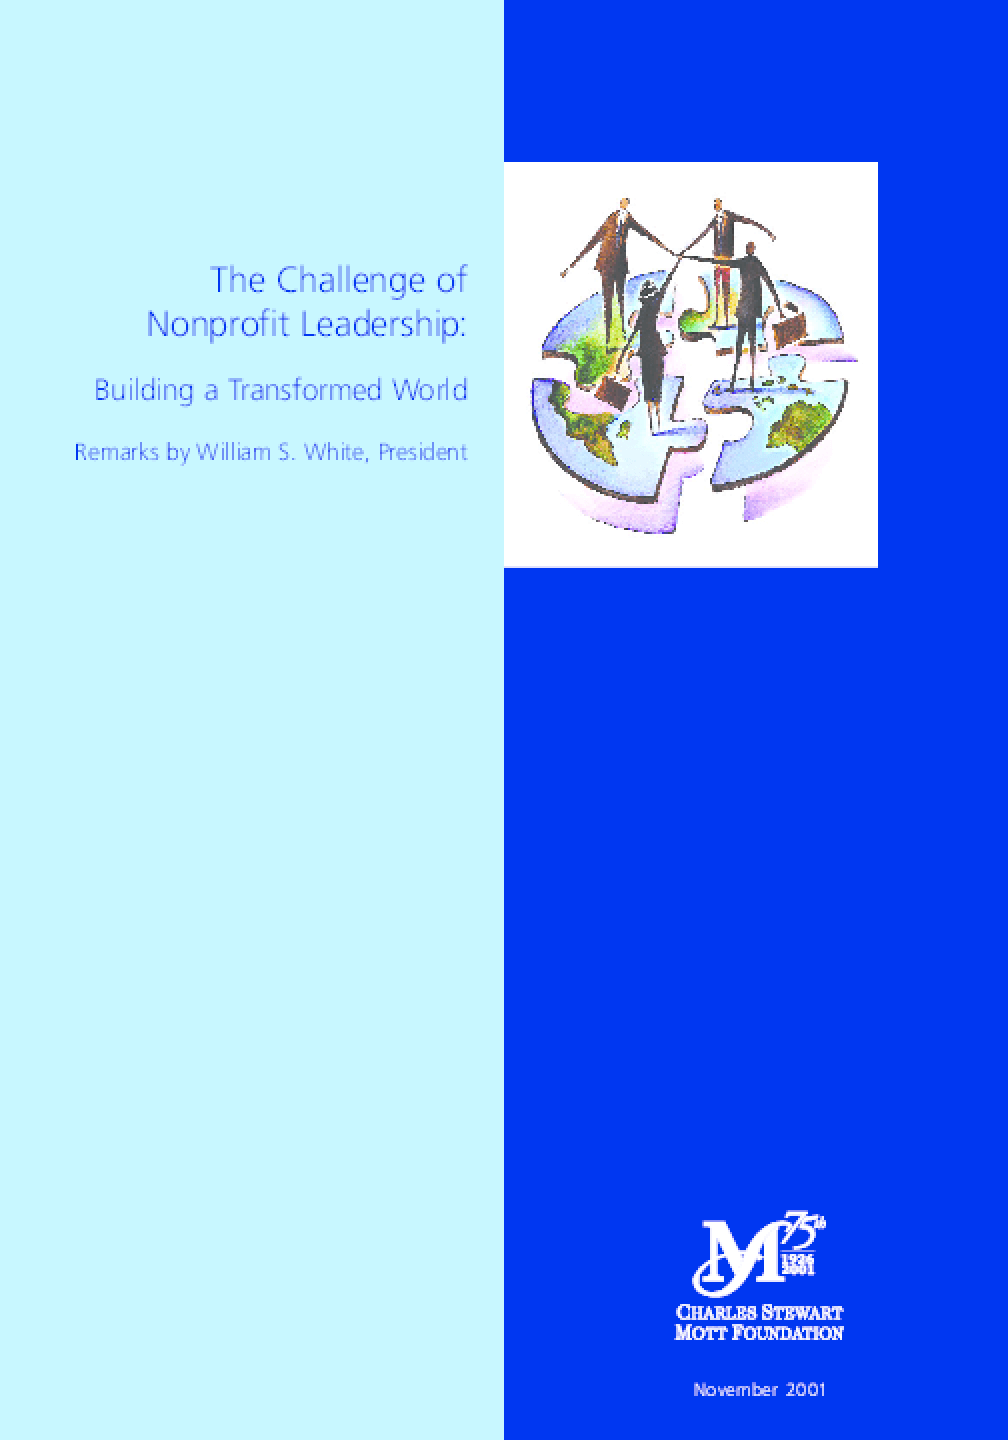 The Challenge of Nonprofit Leadership: Building a Transformed World